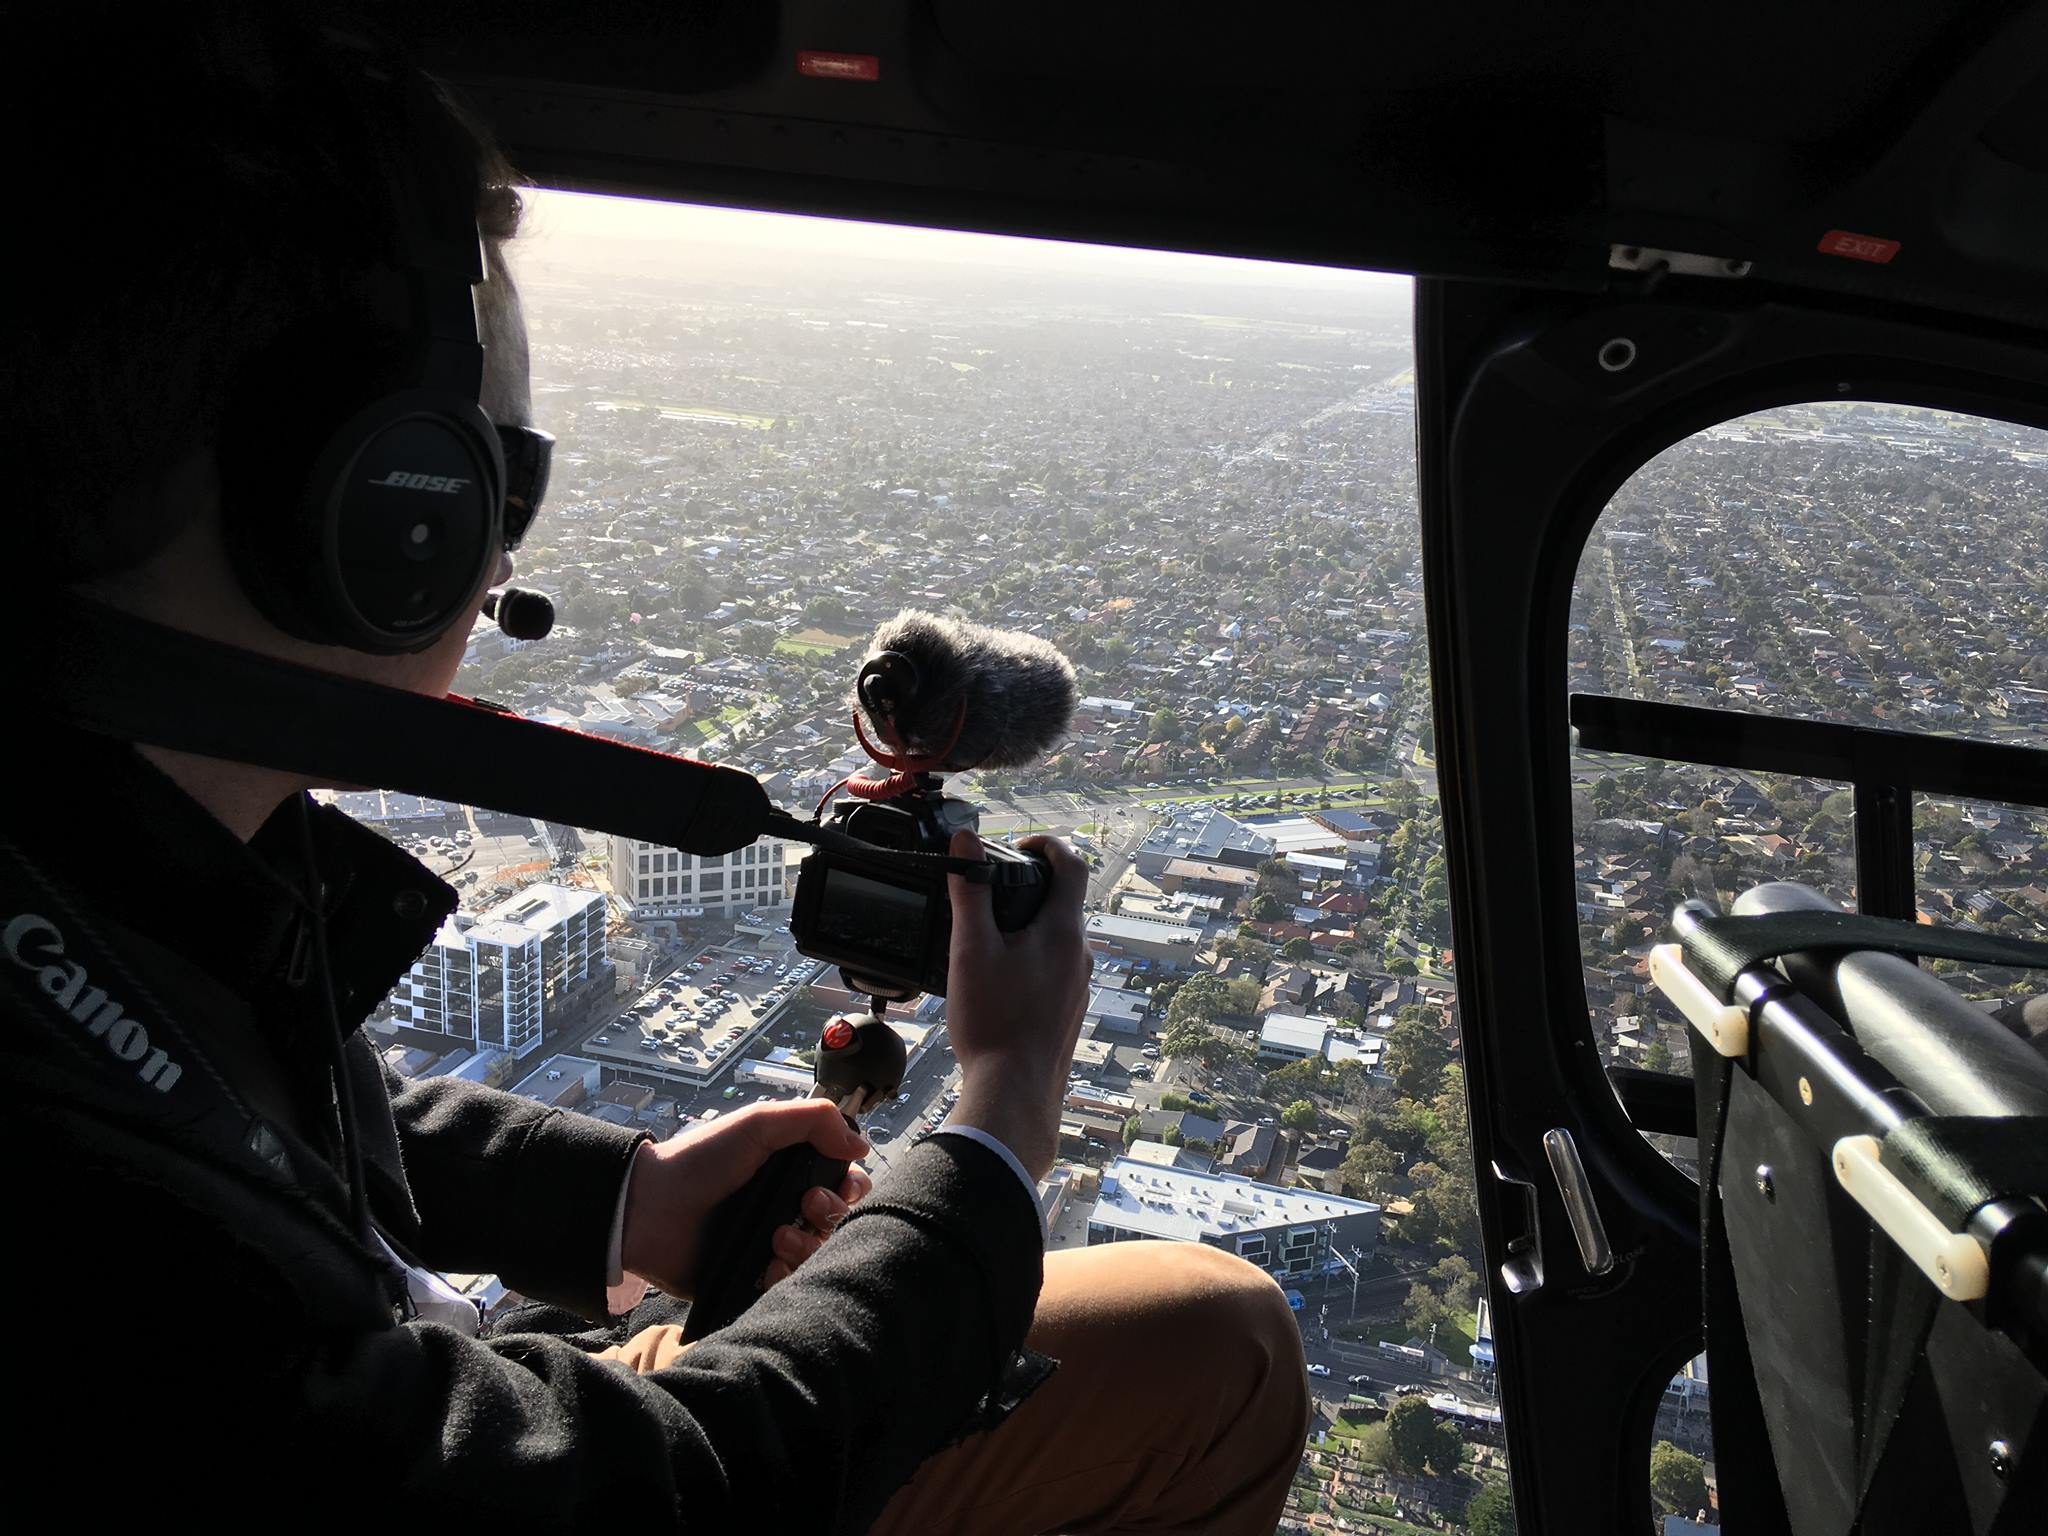 Cameron Howe up in the air with The Mordialloc Chronicle and RACV